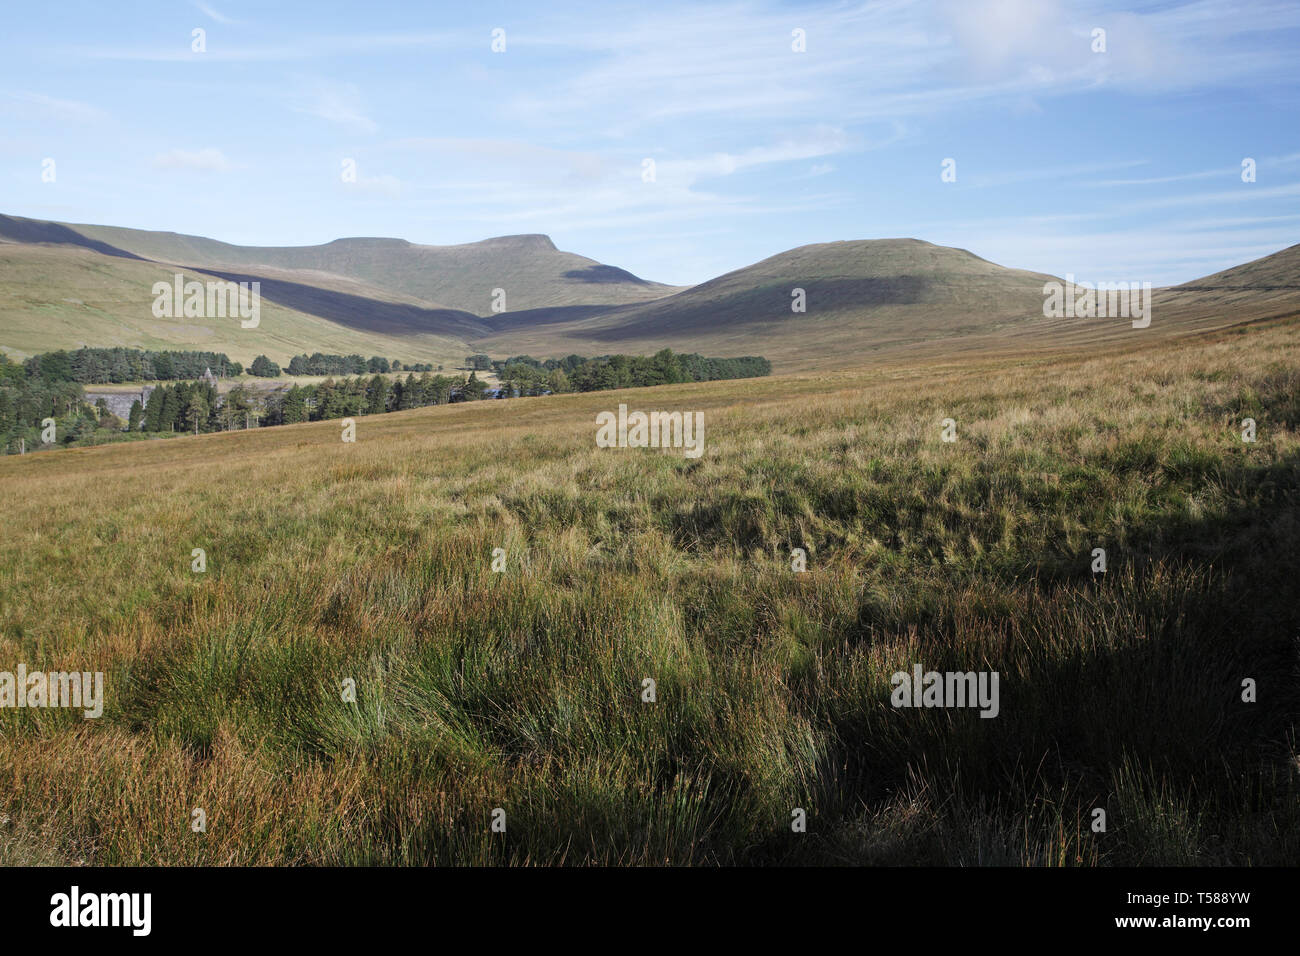 View to Pen-y-fan and Corn Dhu Brecon Beacons National Park Wales UK 2012 - Stock Image